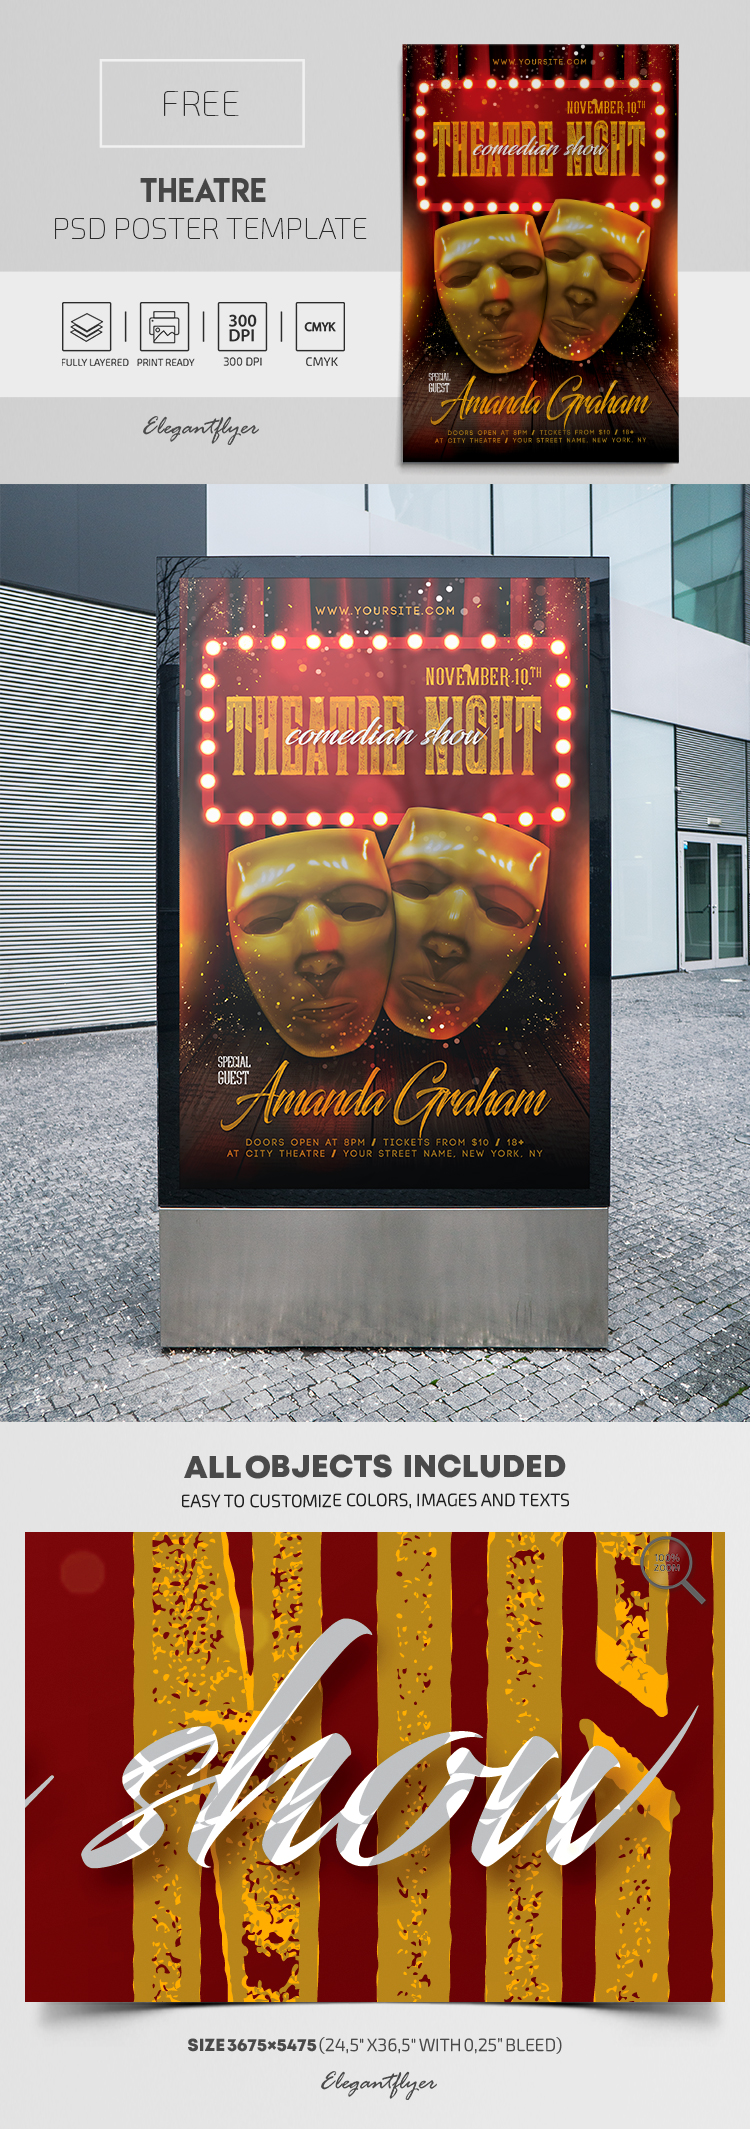 Theatre – Free PSD Poster Template